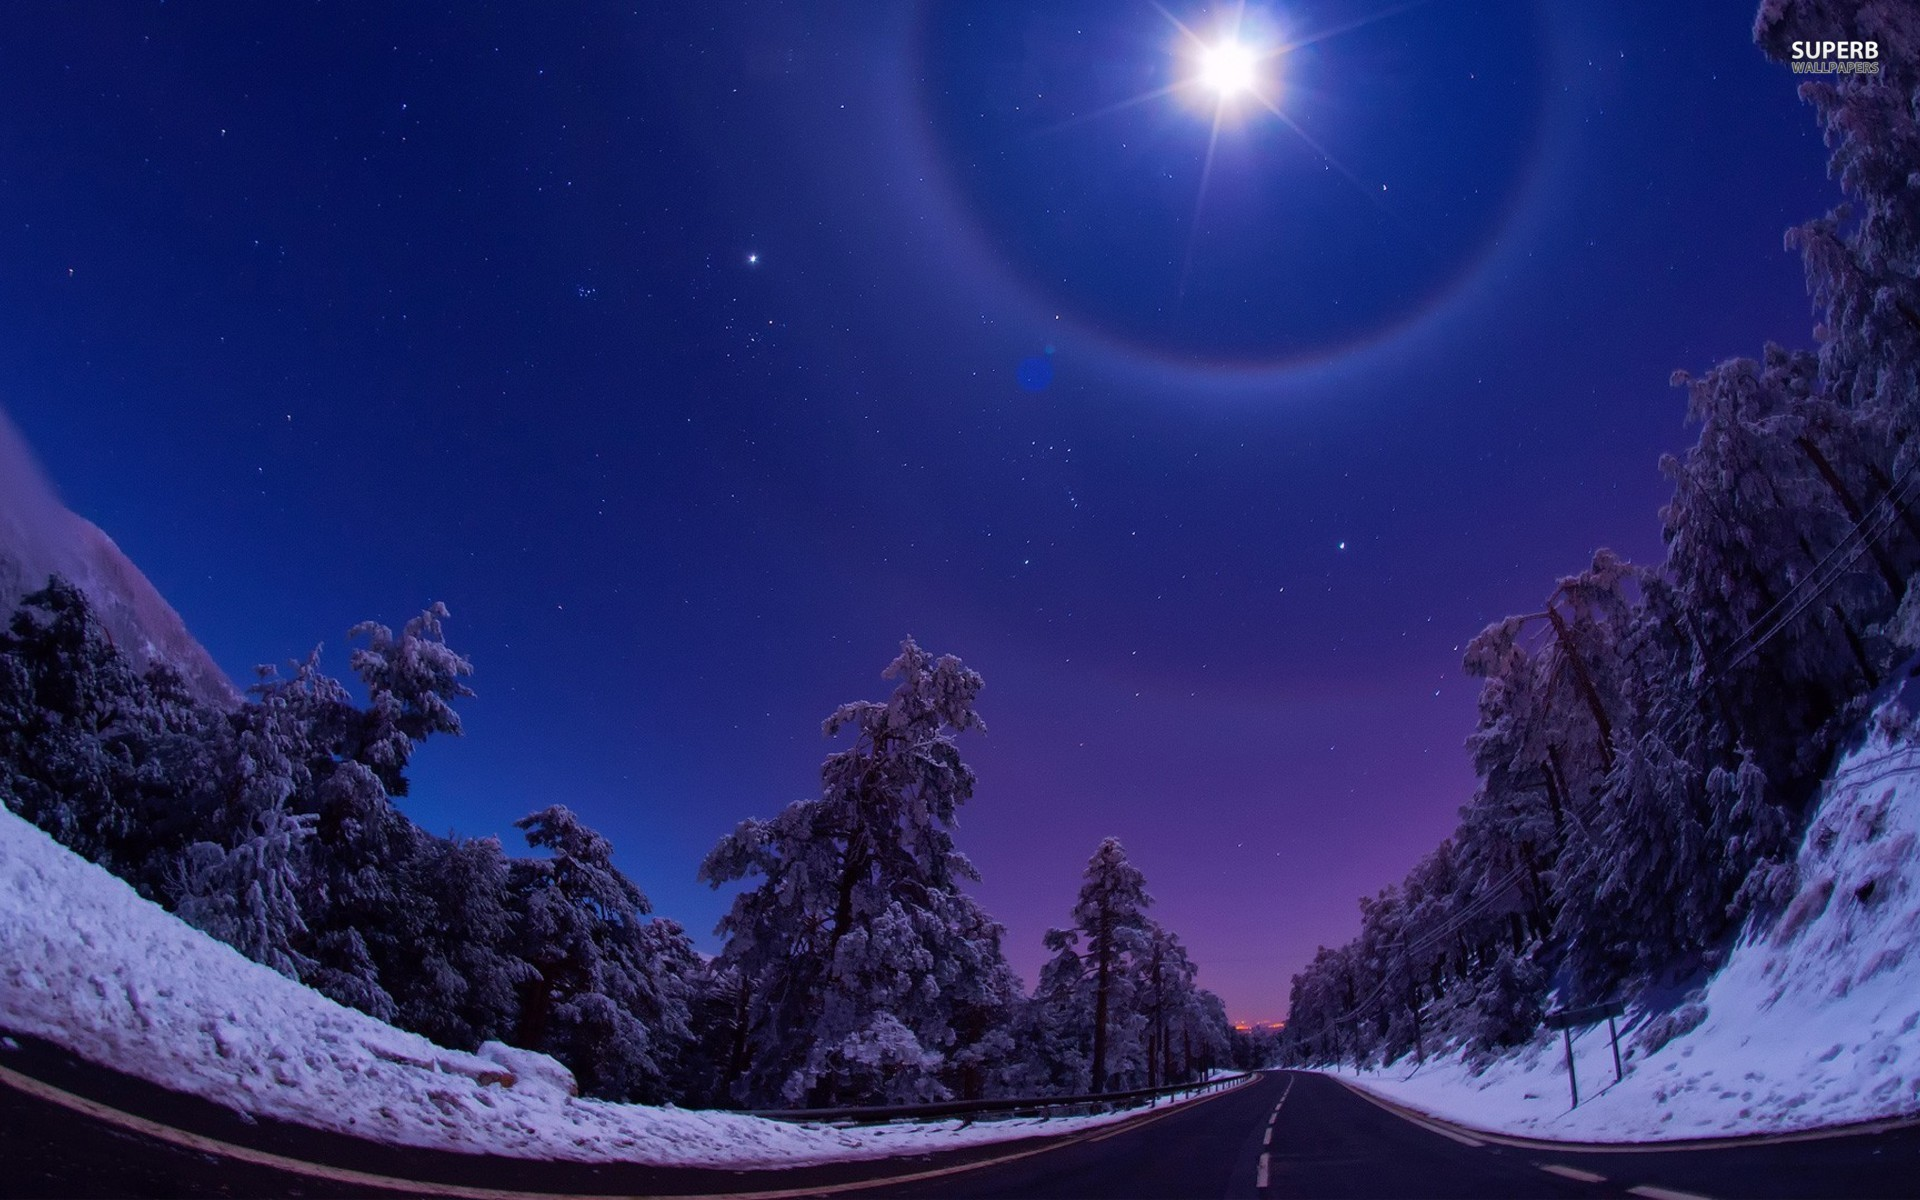 Night Star Road Trees Winter wallpapers | Night Star Road ...